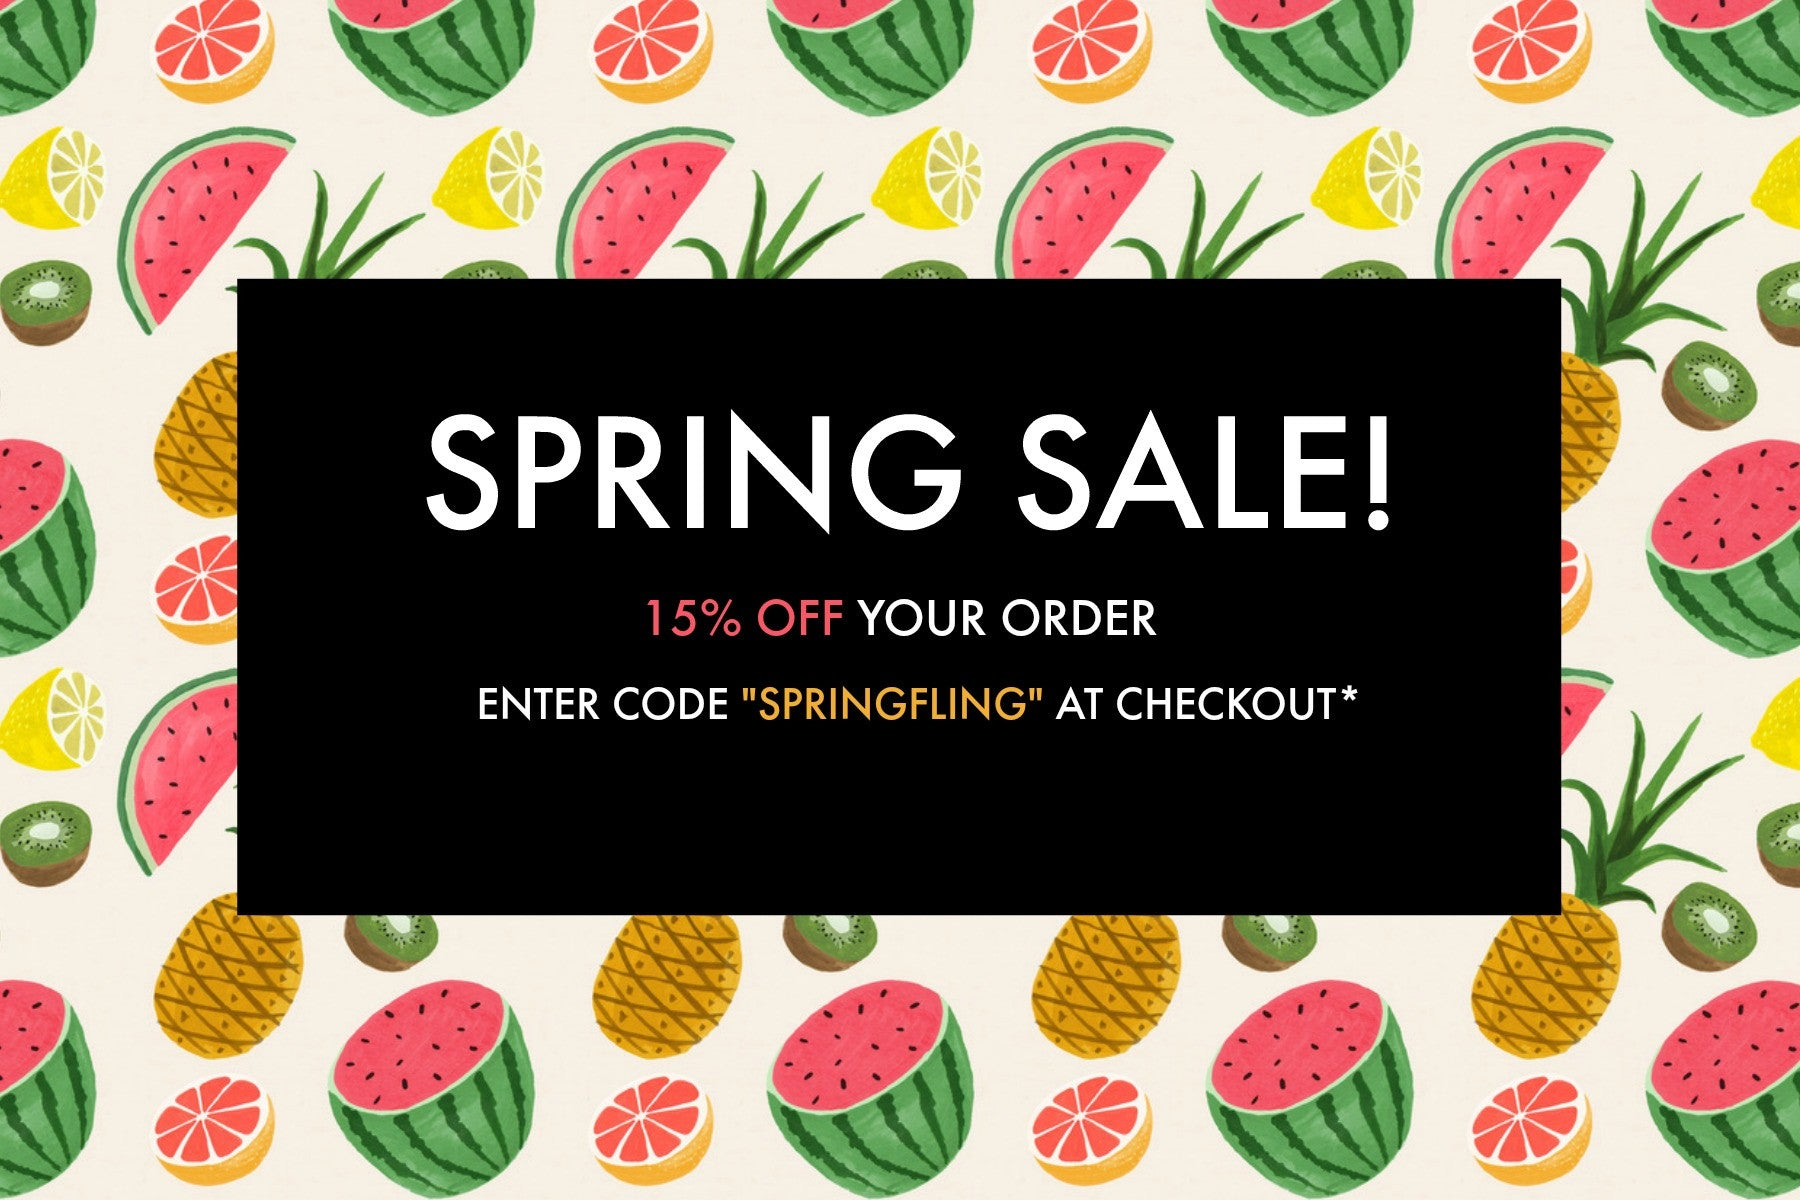 Spring Sale! Take 15% Off Your Order